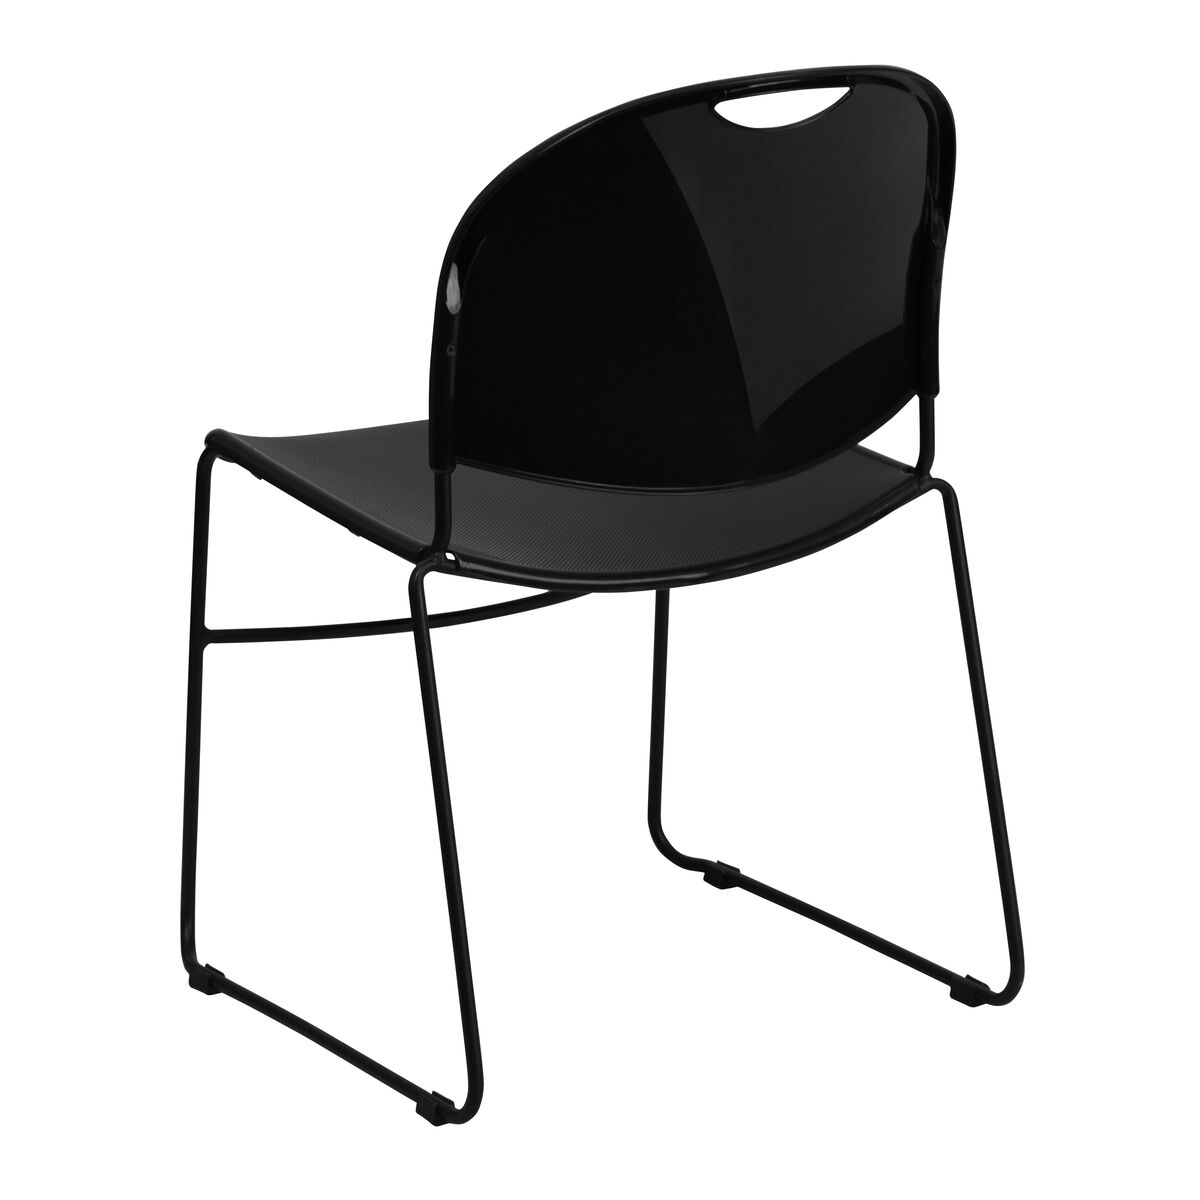 Our Hercules Series 880 Lb Capacity Black Ultra Compact Stack Chair With Frame